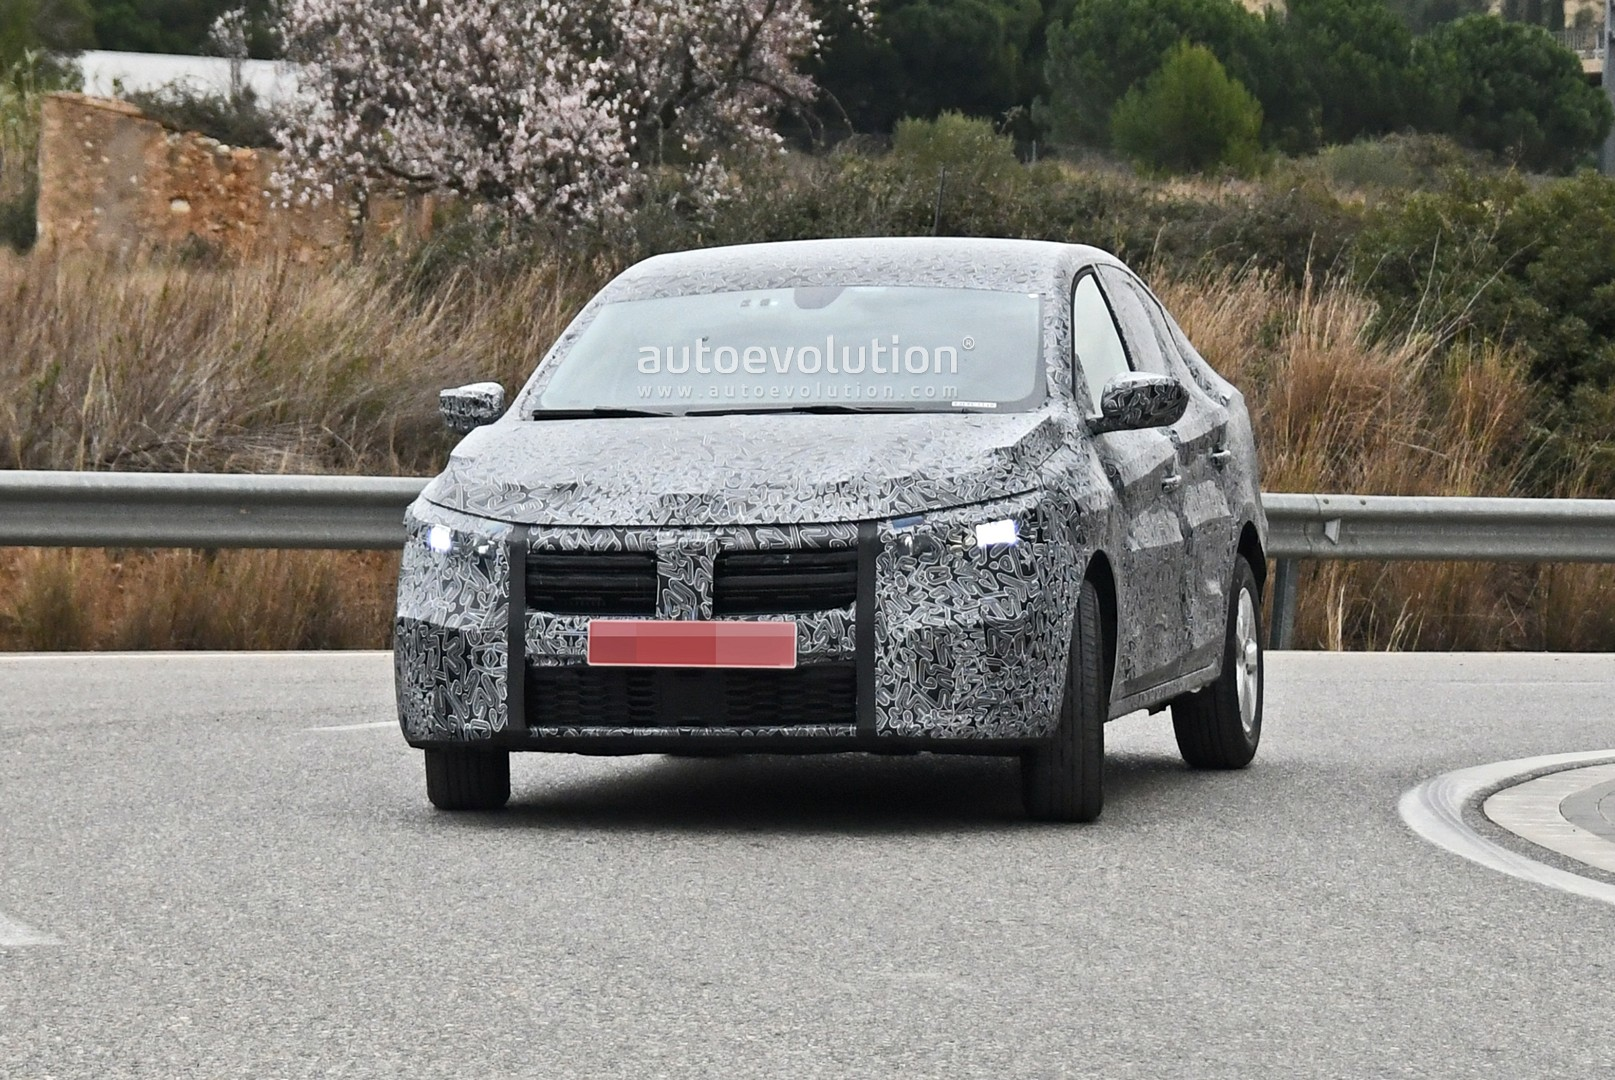 all-new-2021-dacia-logan-spied-with-led-lights-coupe-roof_1